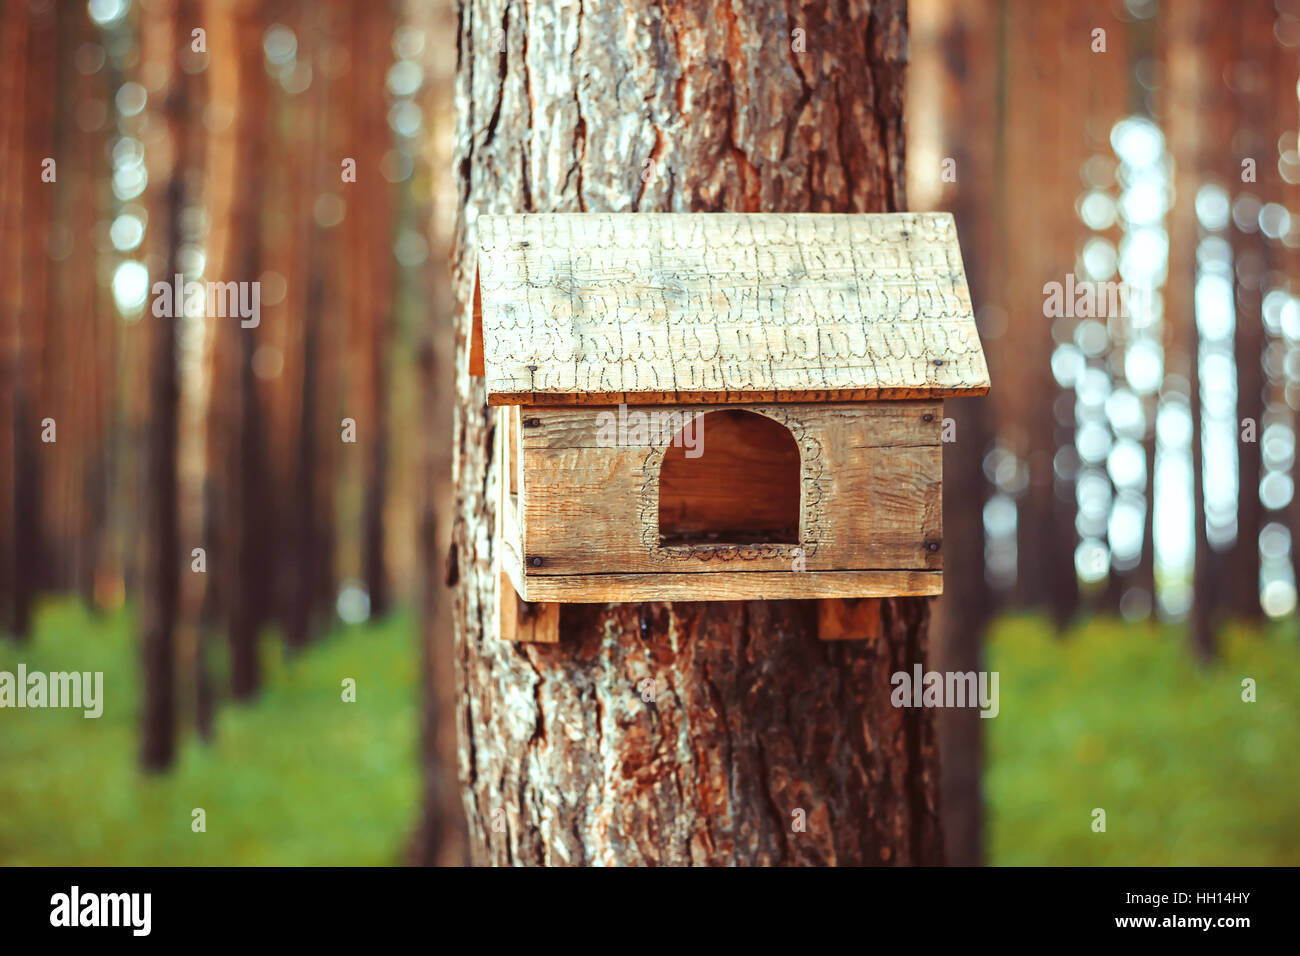 Birdhouse in the woods - Stock Image